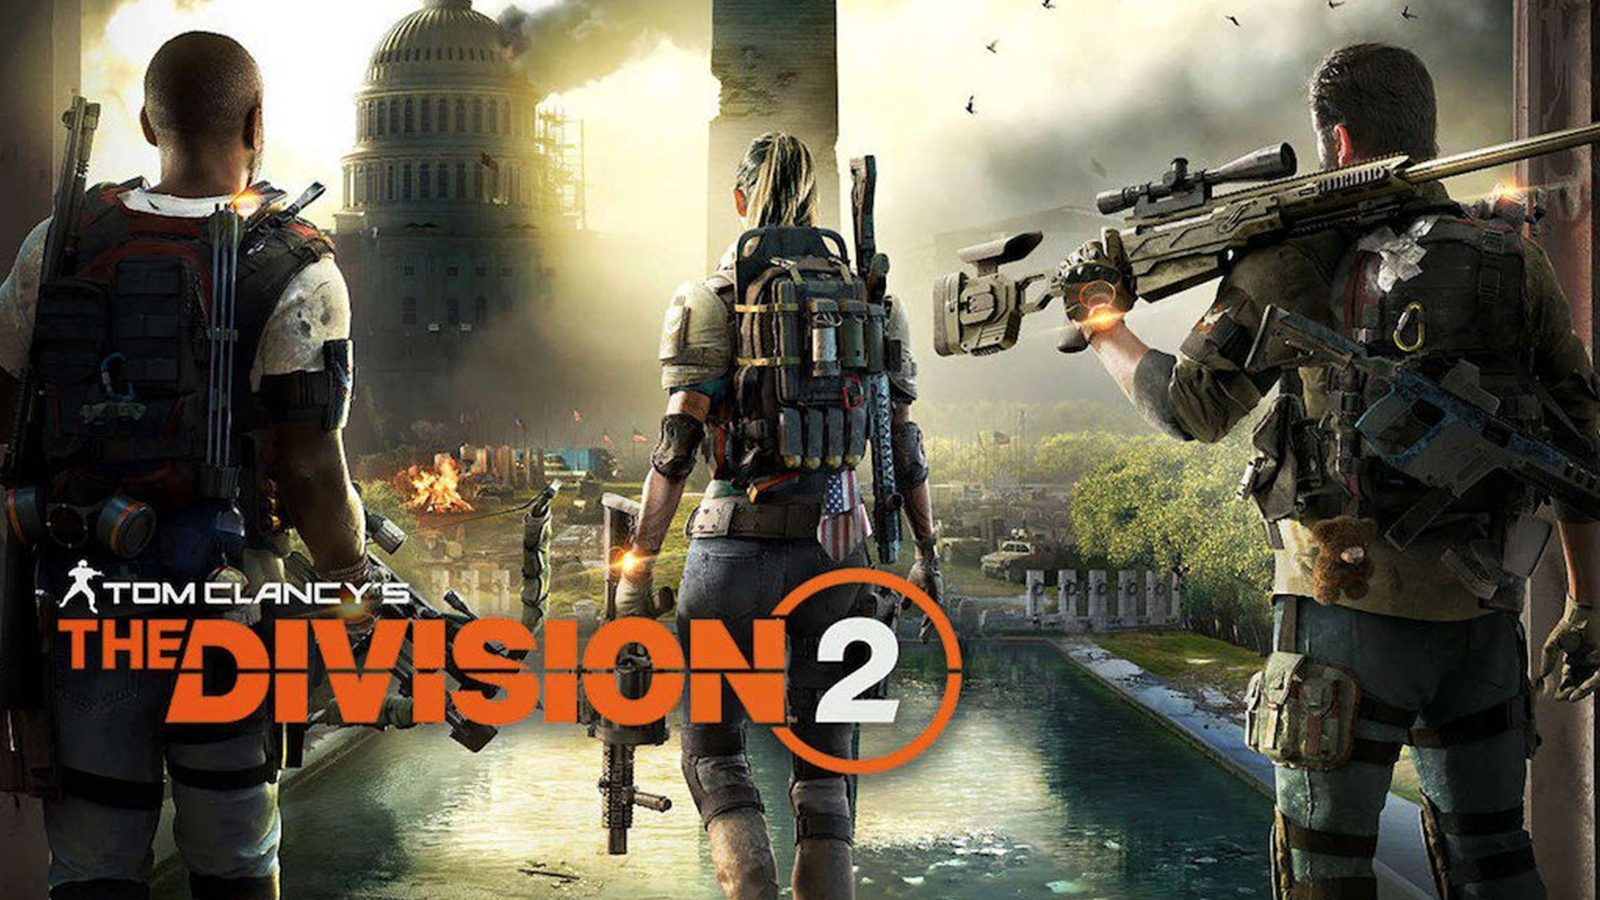 division 2, the division 2, version, all versions, cost, how much, ubisoft